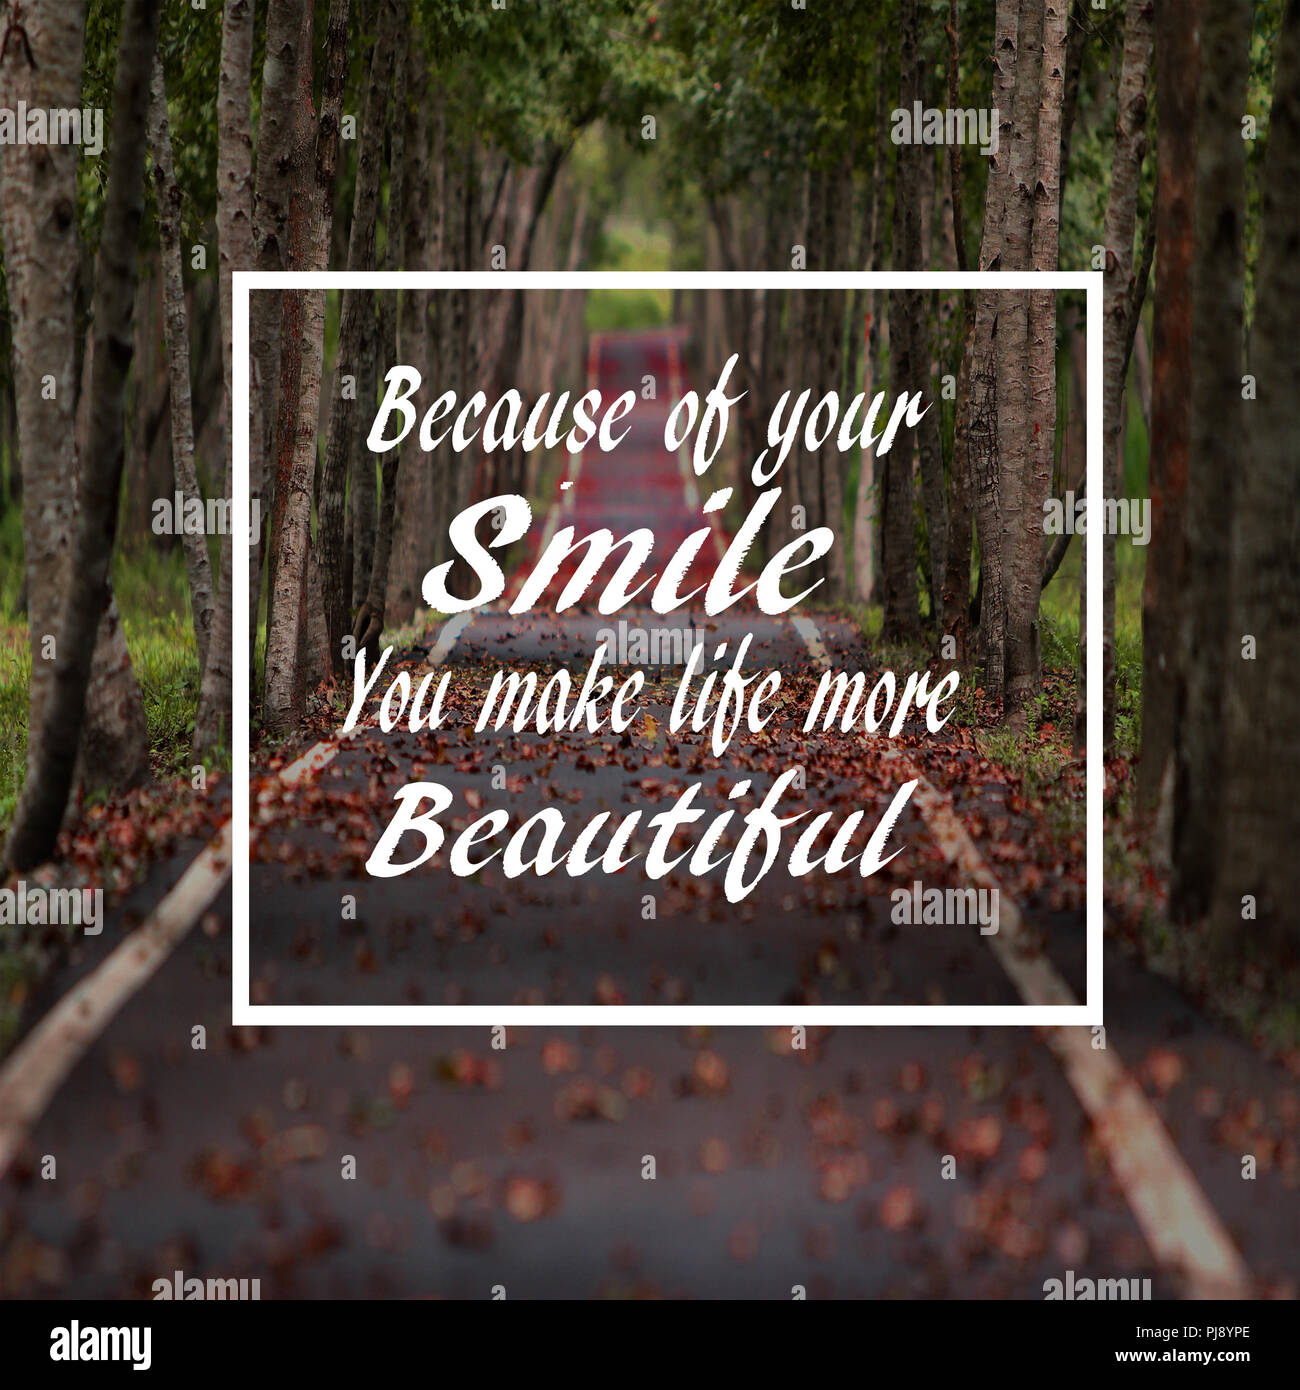 Life Quotes Because Of Your Smile You Make Your Life More Beautiful